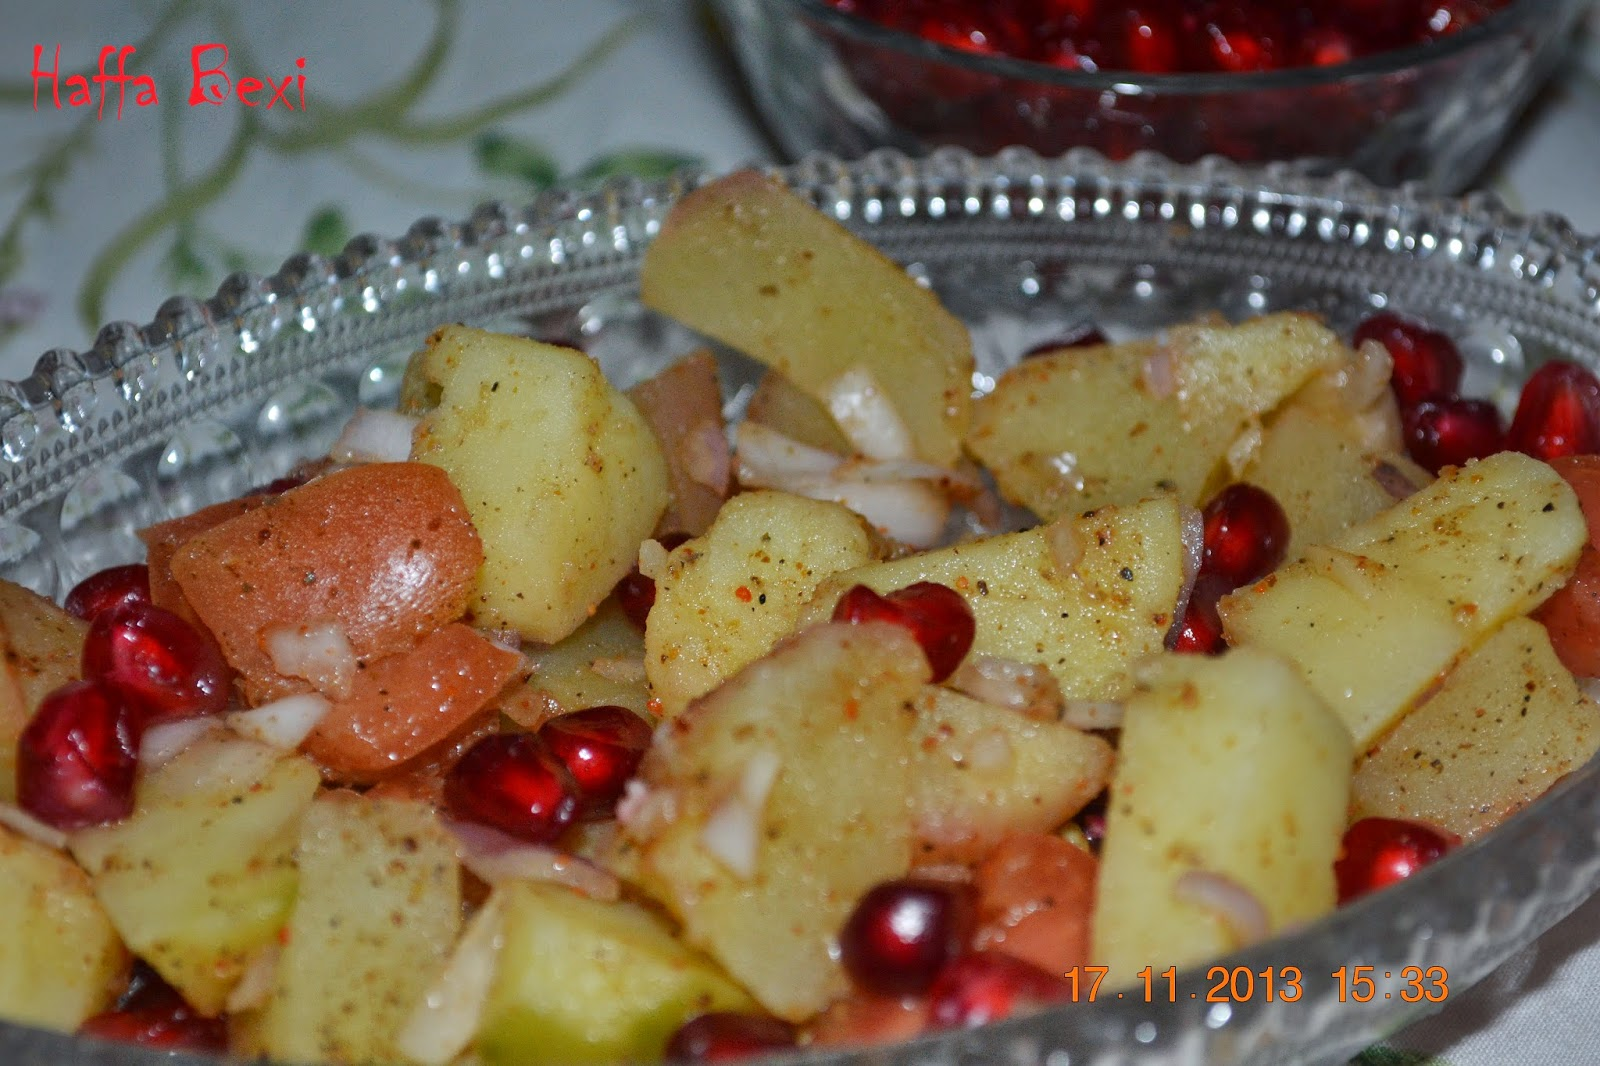 Diet recipes, Fruit salad, Salad, salads, homemade potato salad, potato salad, red potato salad, easy potato salad, how to make potato salad, pomegranate salad,